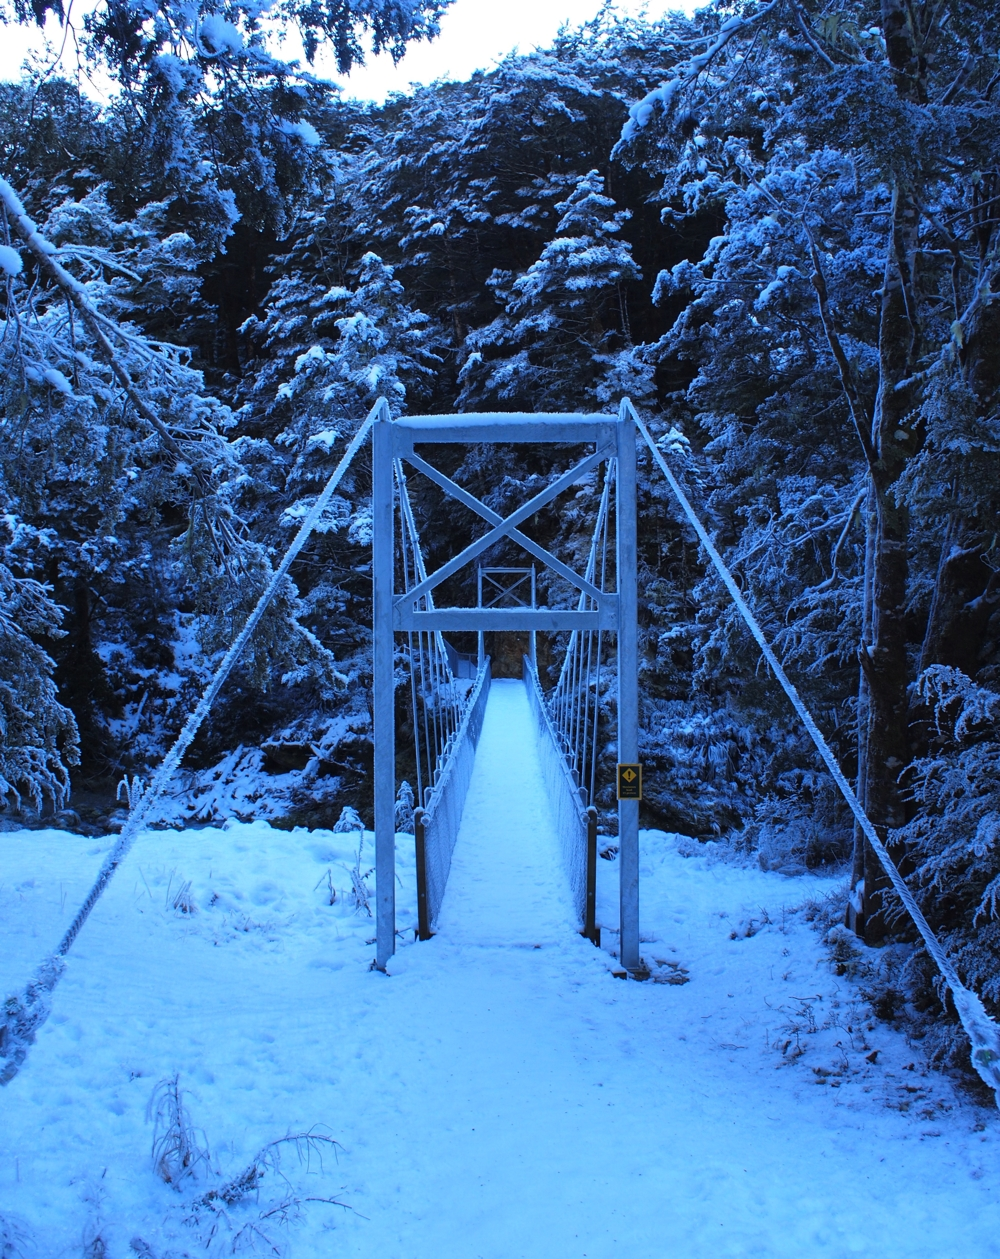 Swingbridge on Routeburn Track